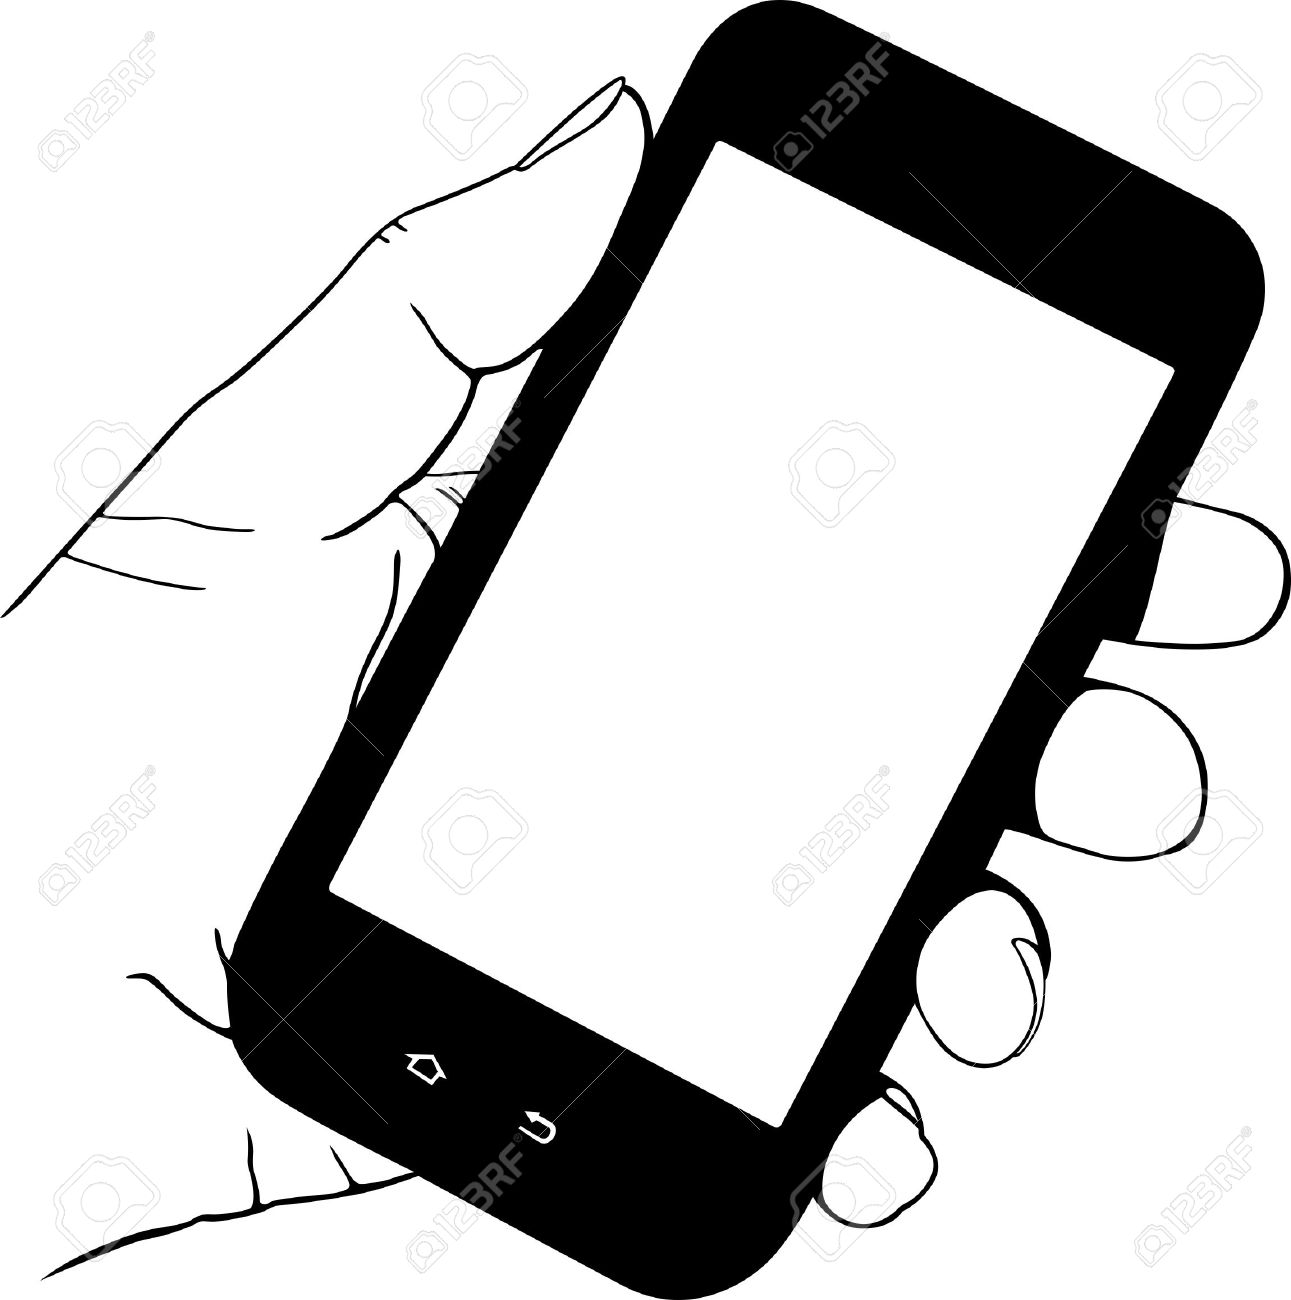 9,097 Cell Phone Hand Stock Vector Illustration And Royalty Free ...